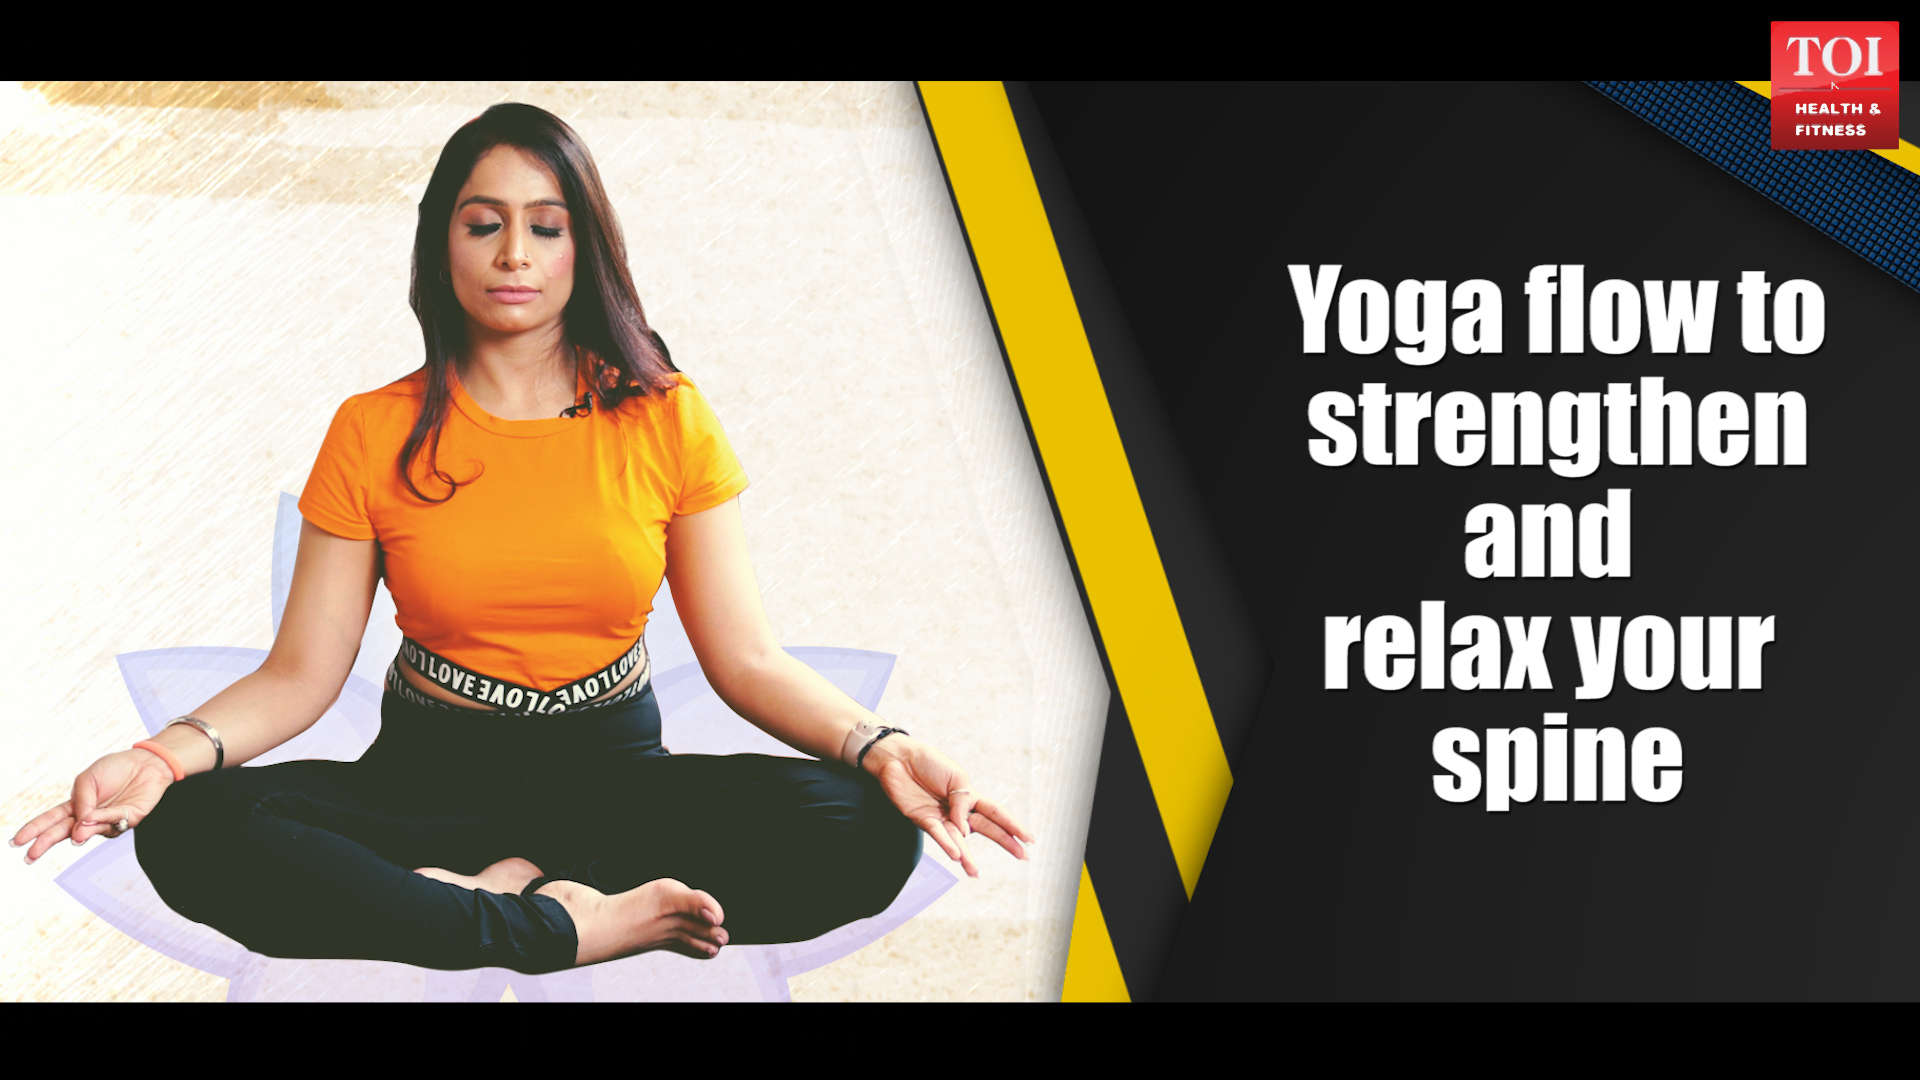 Yoga flow to strengthen and relax your spine